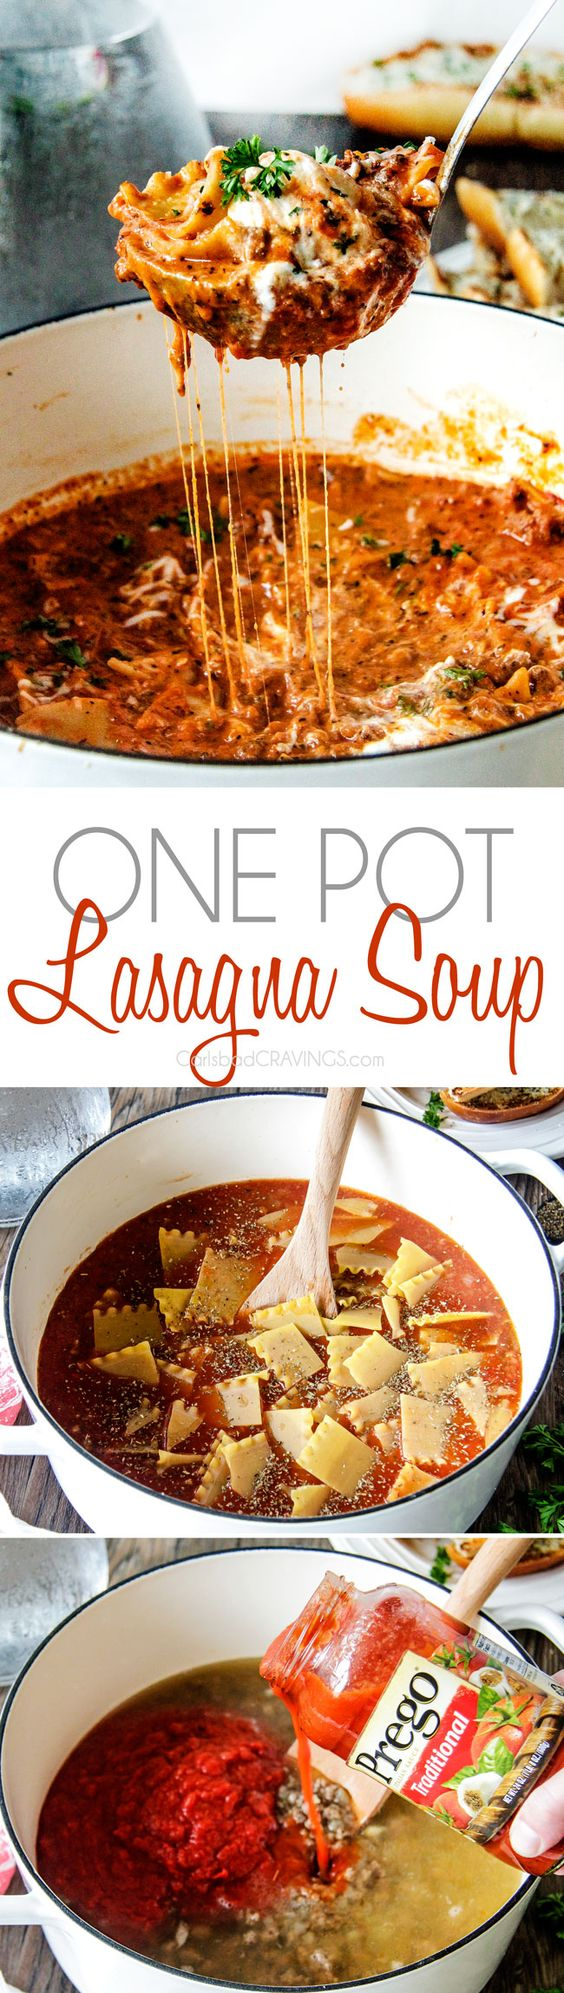 Easy One Pot Lasagna Soup tastes just like lasagna without all the layering or dishes! Simply brown your beef and dump in all ingredients and simmer away! (I feel this could be yummy)